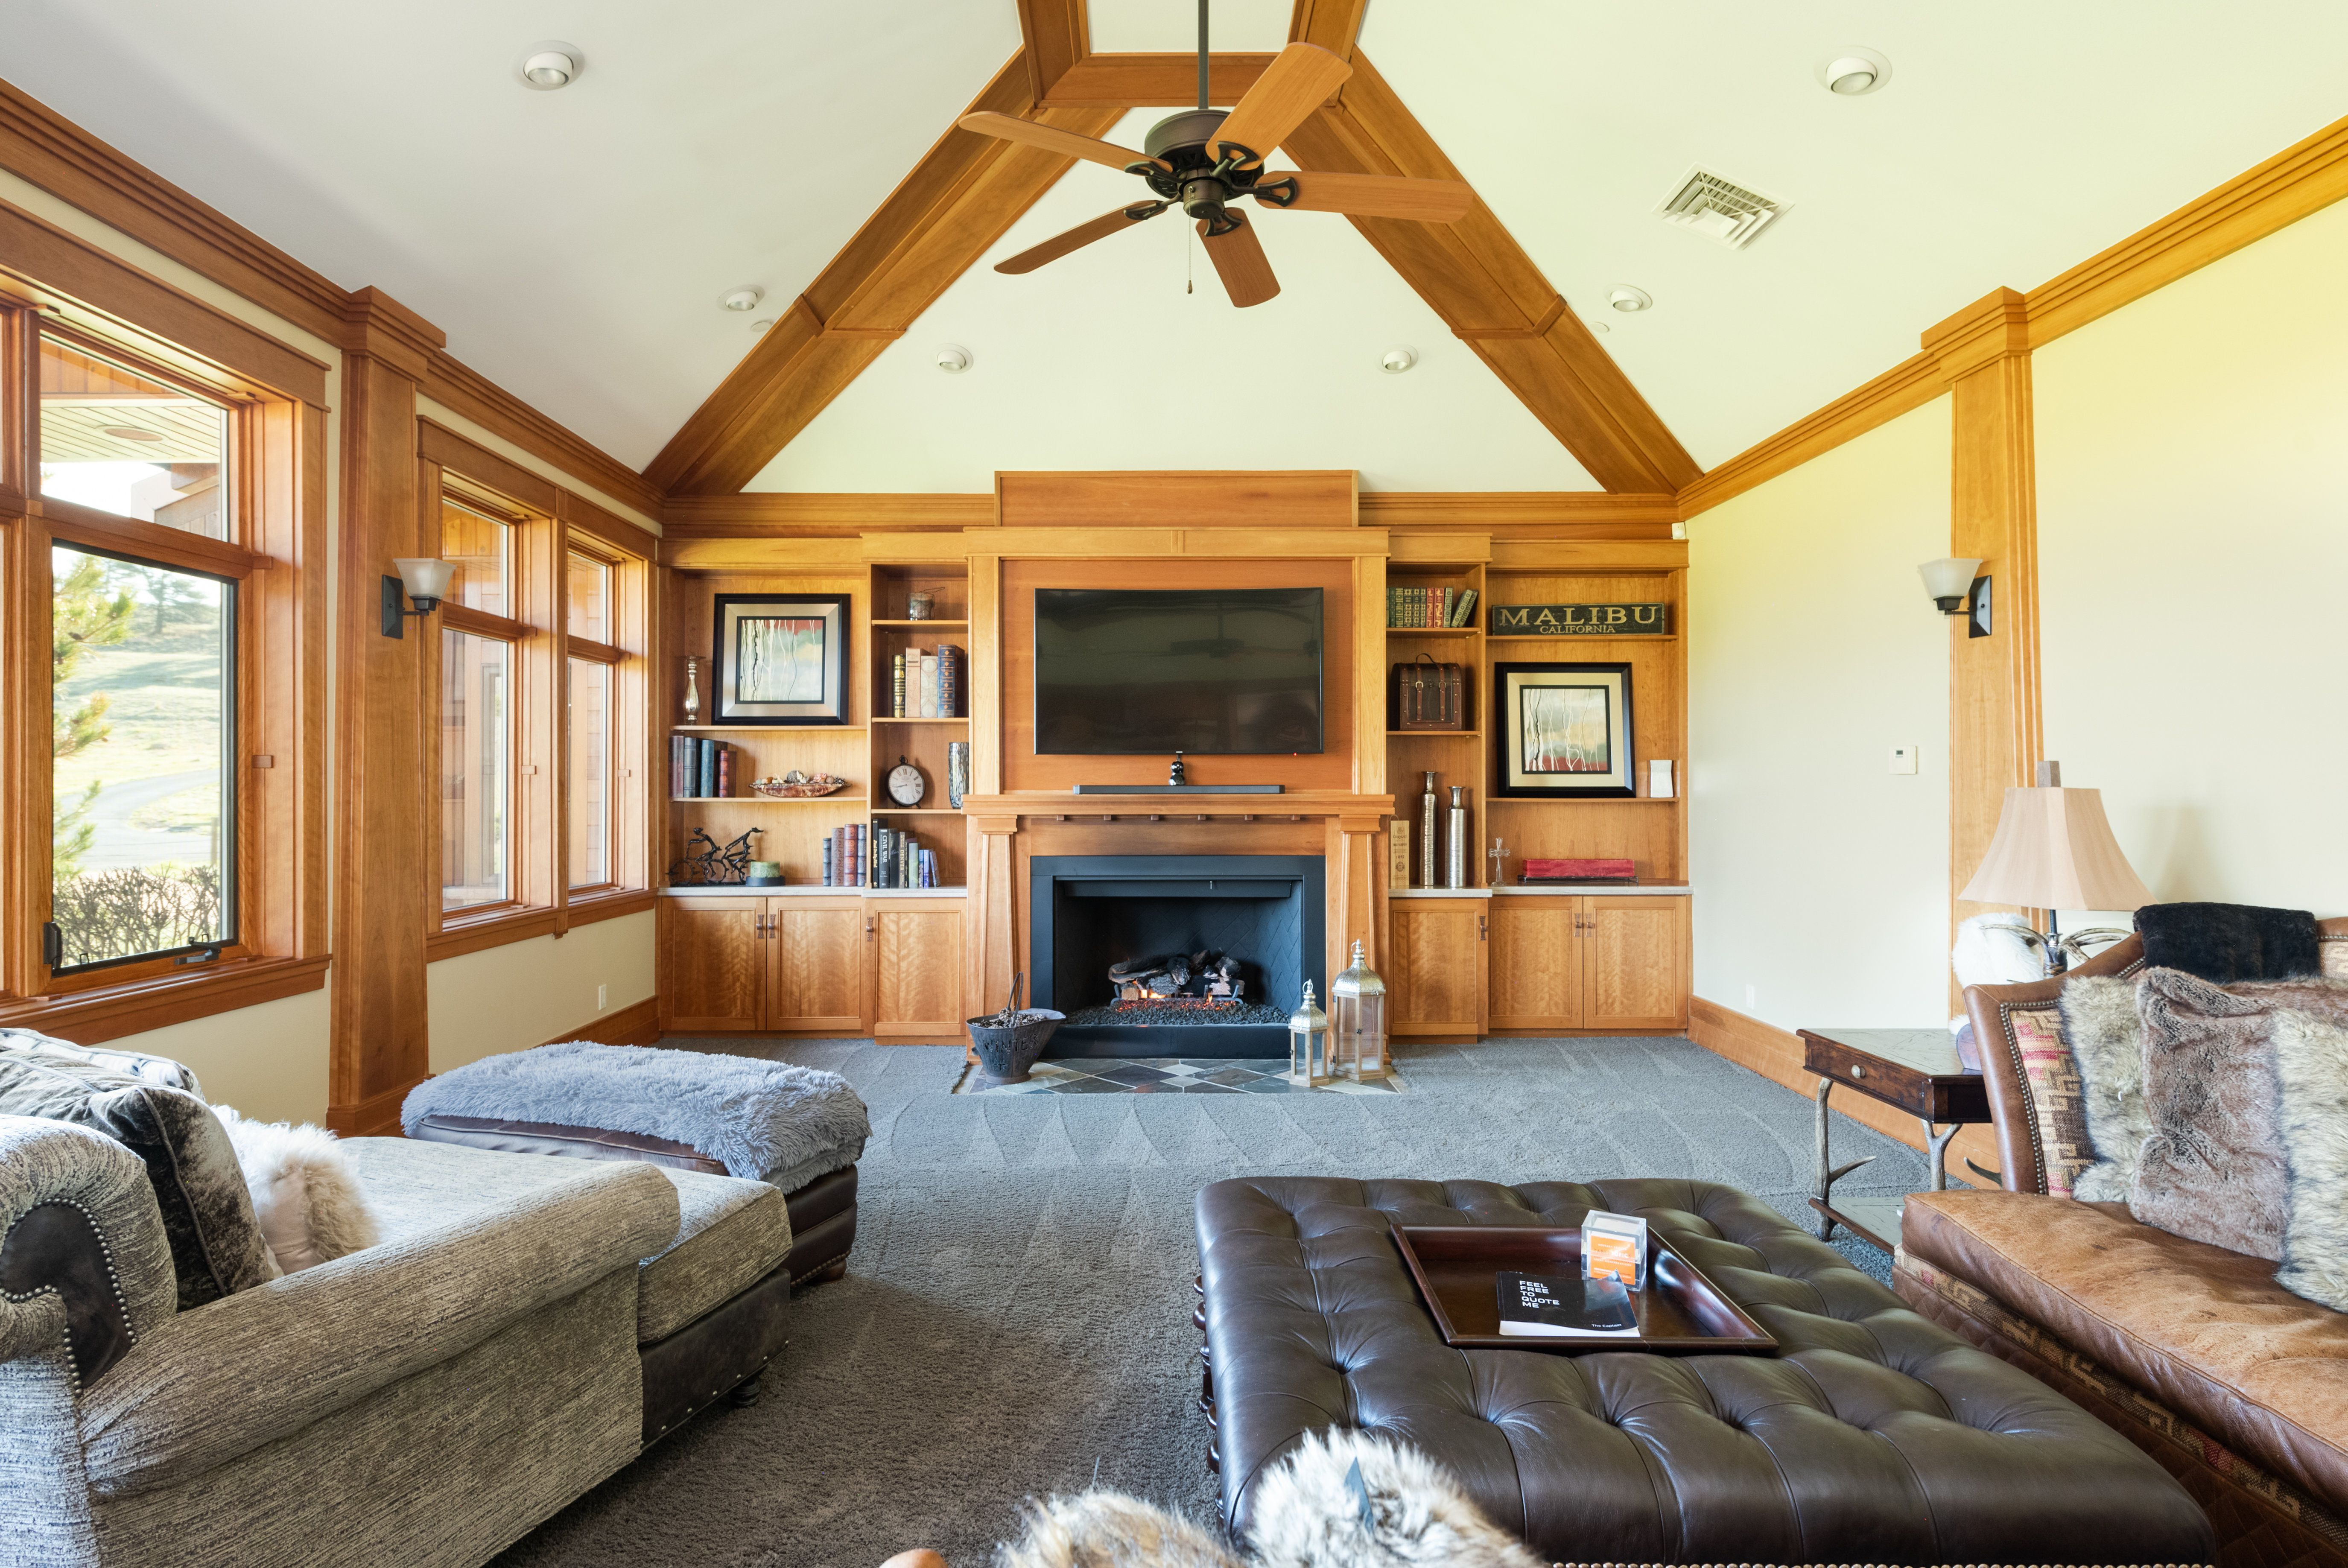 Colorado Mountain house on 35 acres asks $7M living room